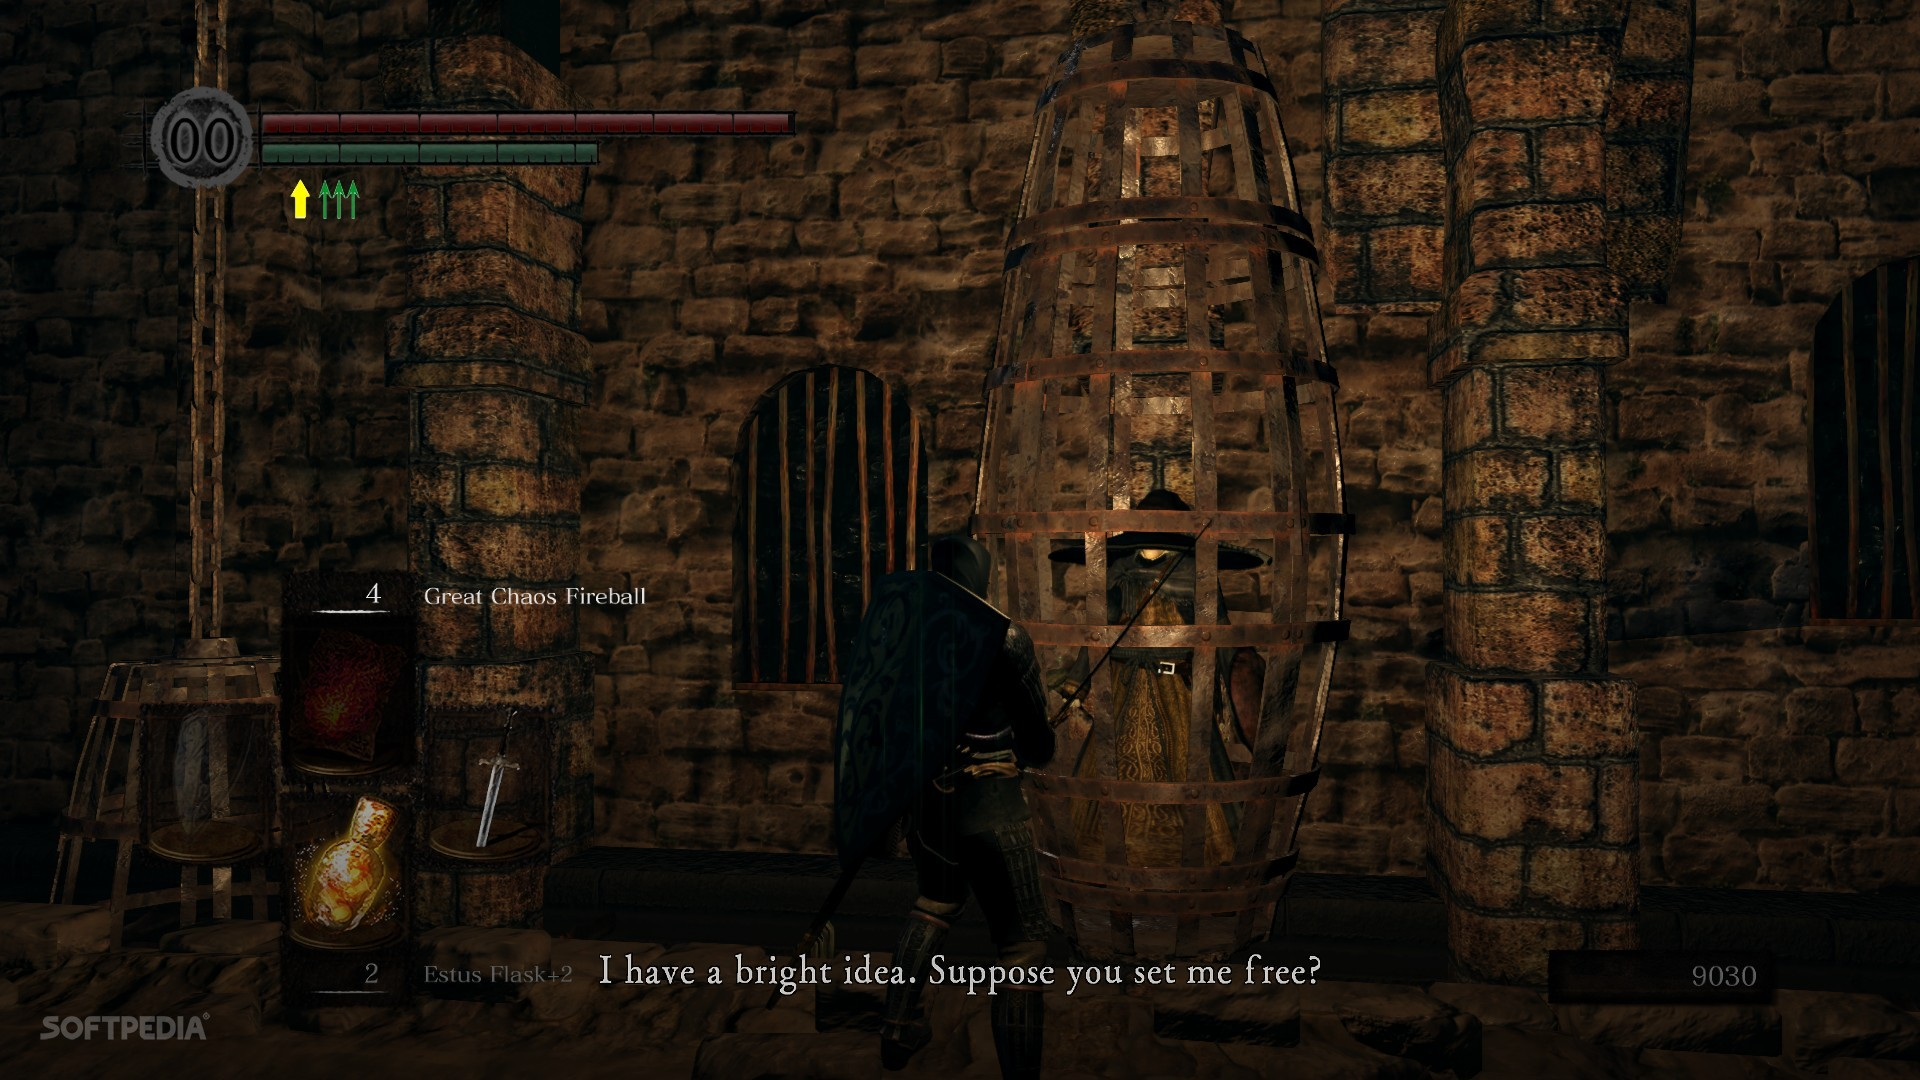 Dark Souls Ii Final Review The Trouble With Sequels: Dark Souls Remastered Review (Playstation 4